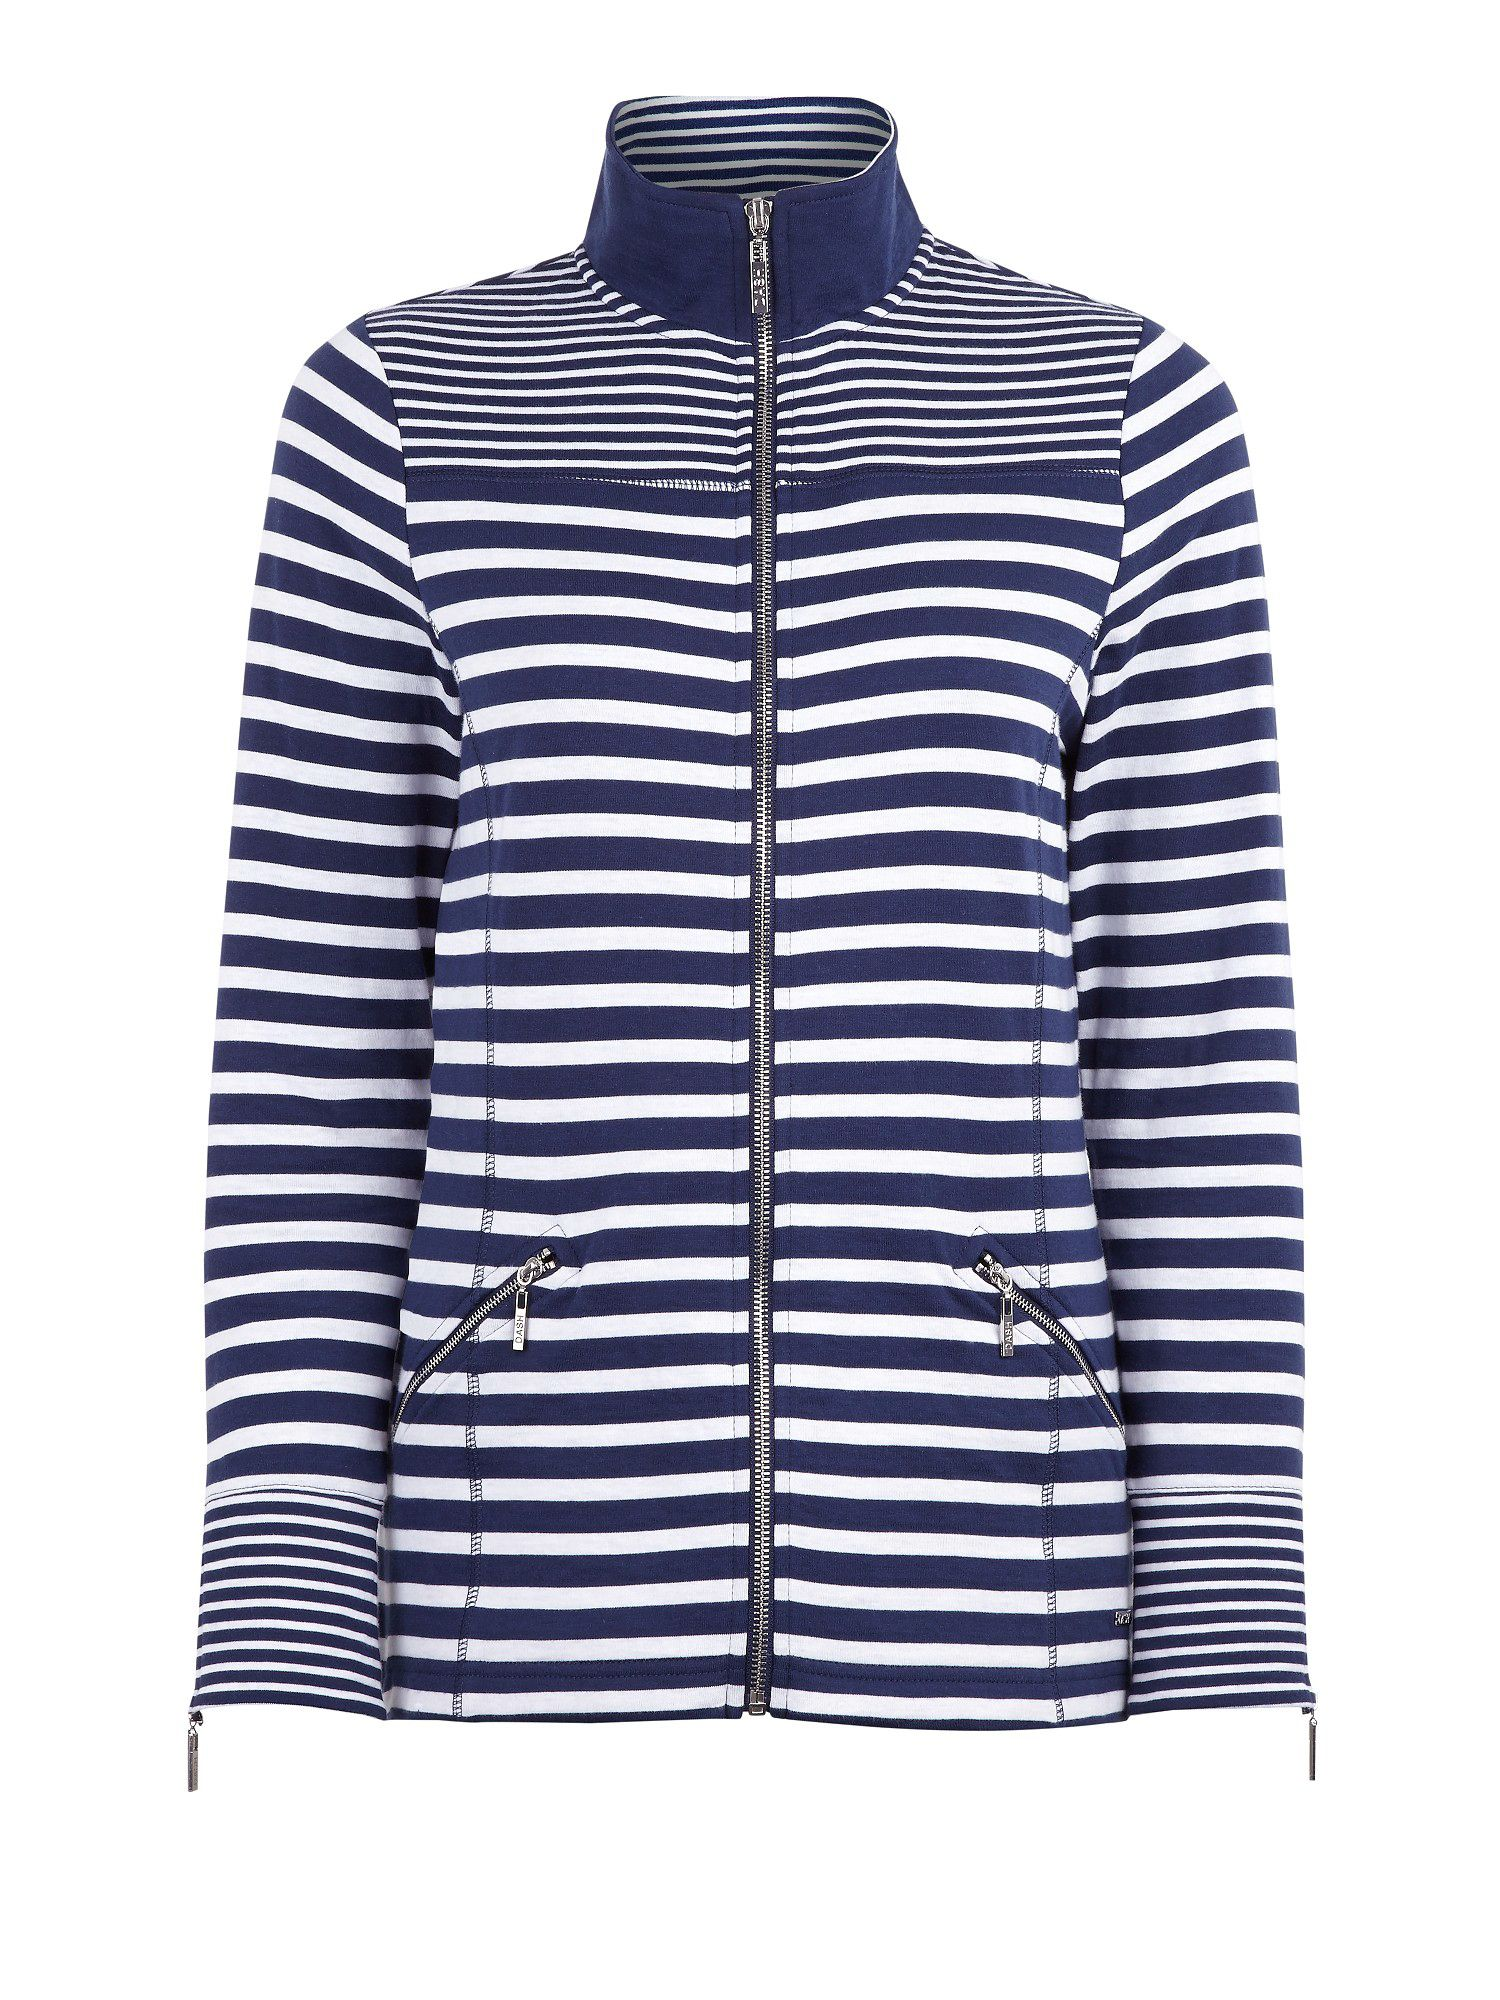 Navy Stripe Jersey Jacket